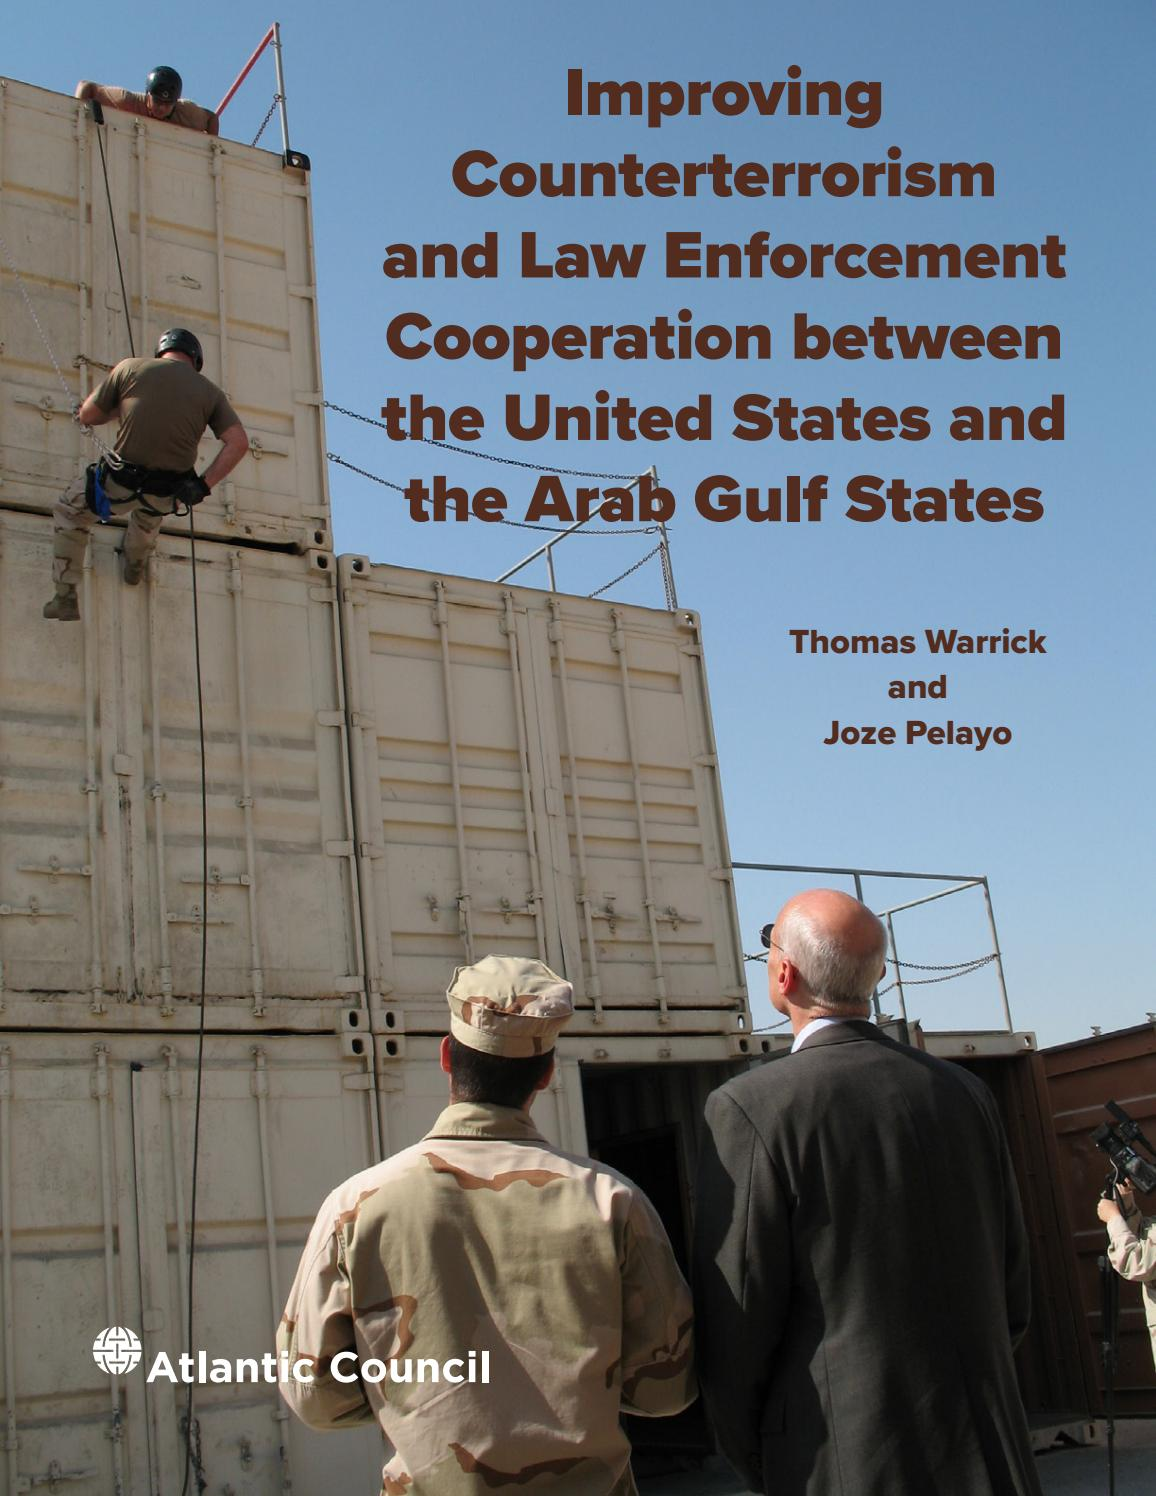 Improving Counterterrorism And Law Enforcement Cooperation Between The  United States And The Arab Gu By Atlantic Council - Issuu